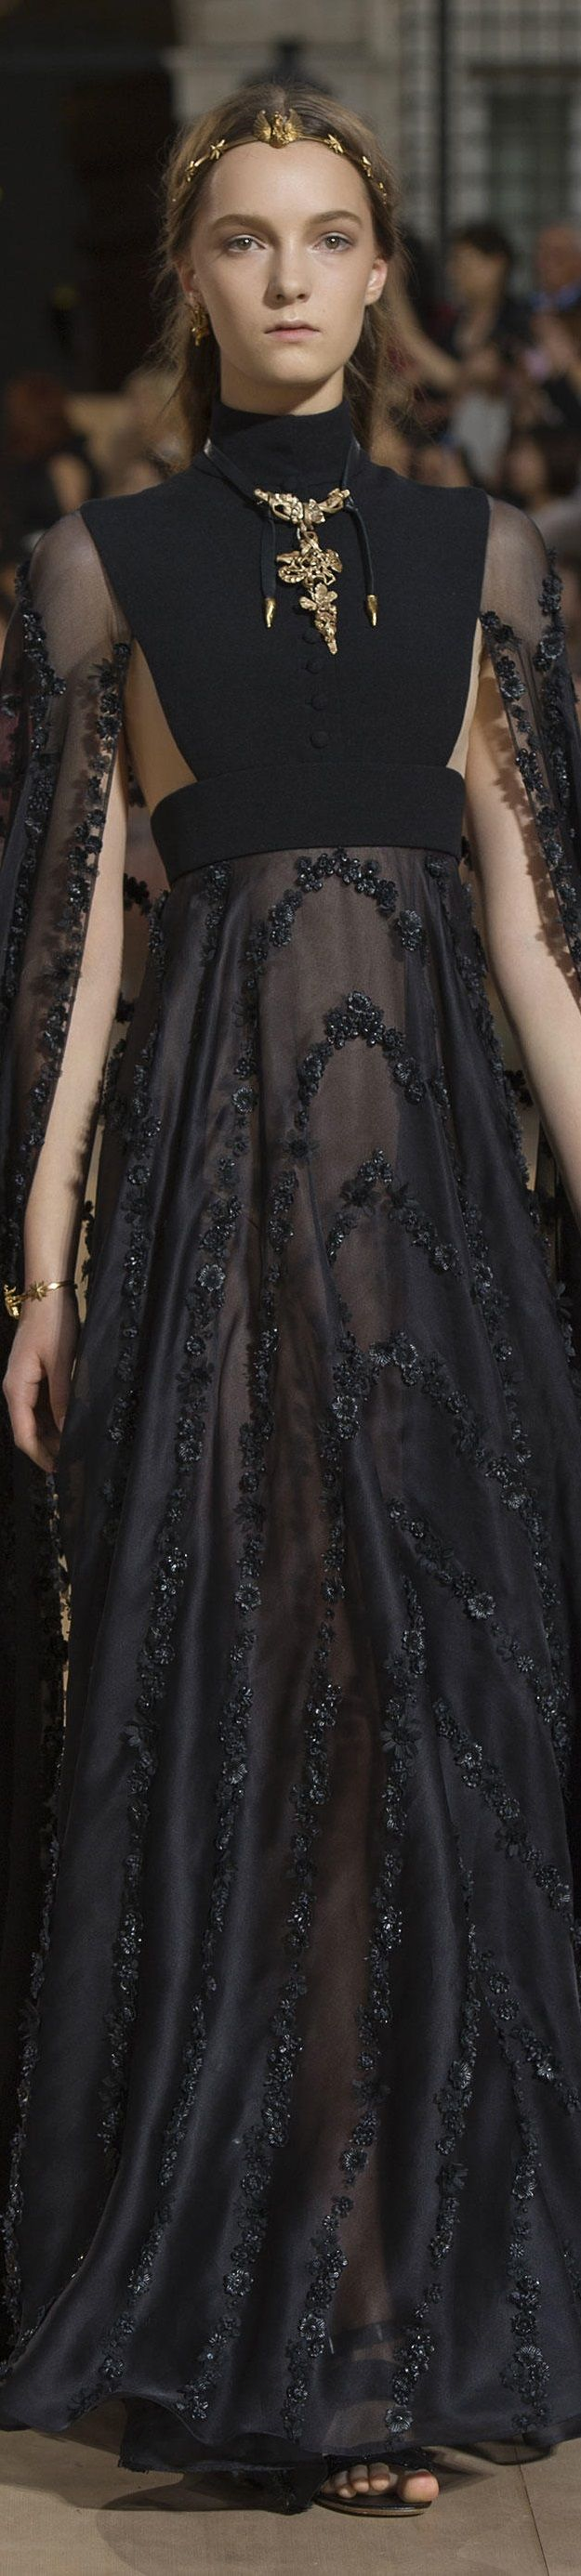 Evening Dress Valentino FW 2015 couture. Luxury, fashion, weddings, bridal style